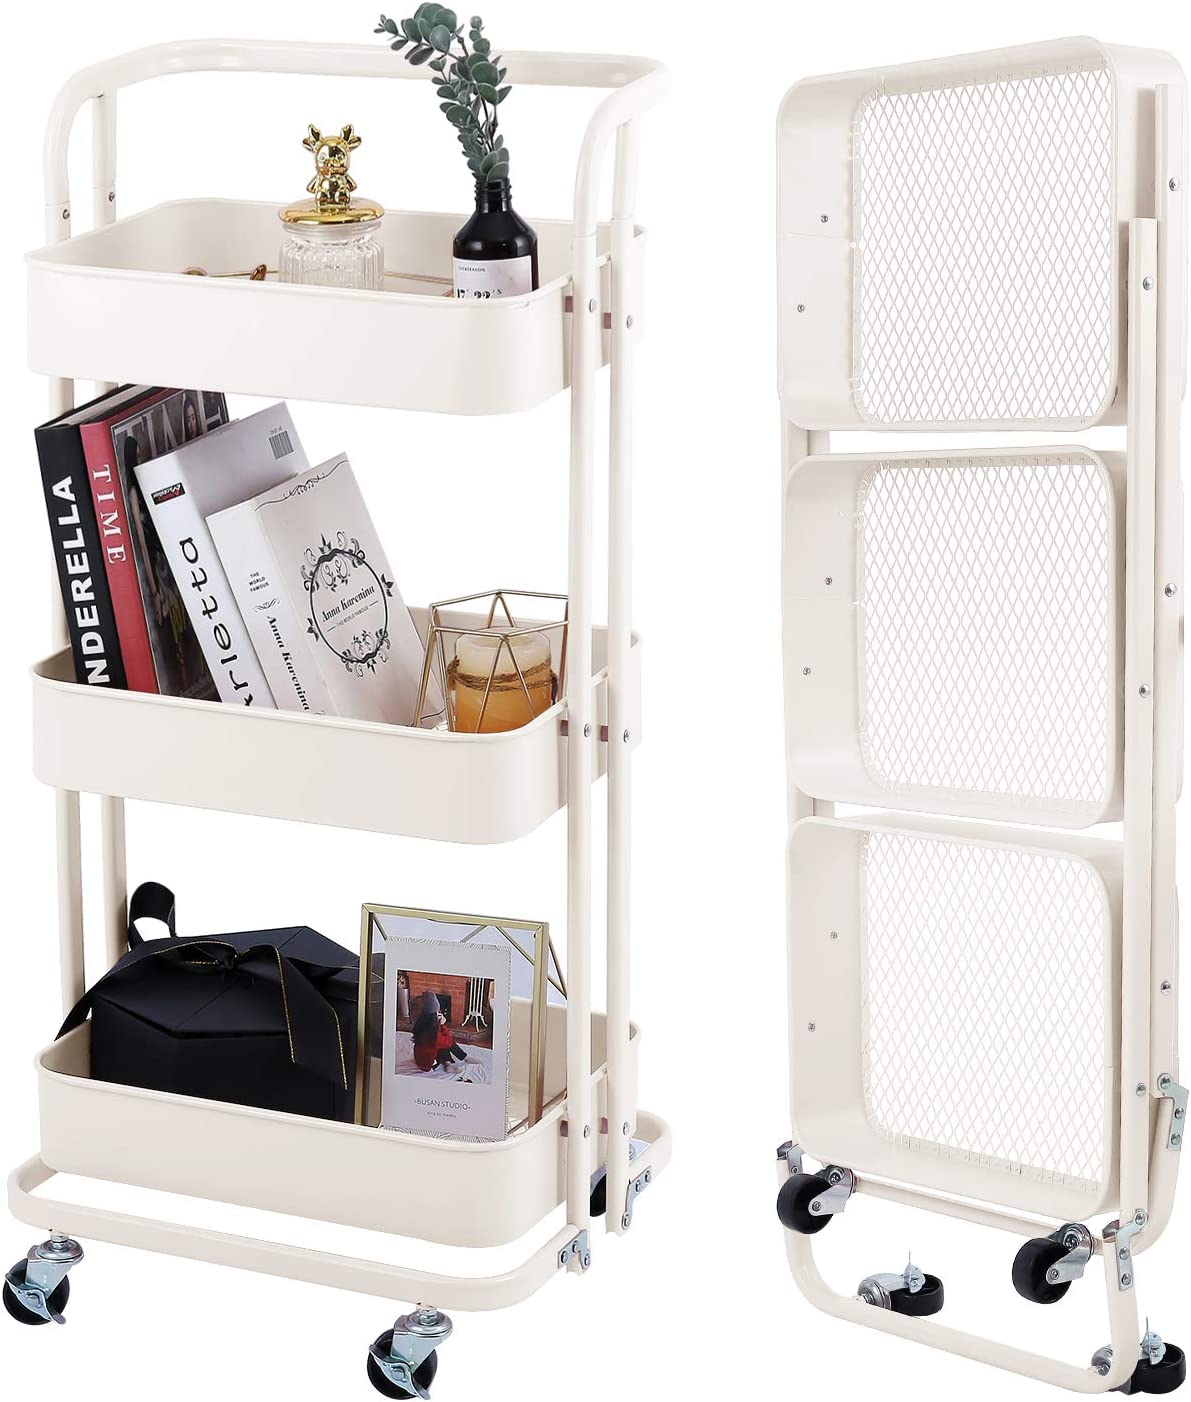 3-Tier Foldable Utility Rolling Cart Multifunction Storage Shelves with Handle and Wheels for Office Kitchen Bathroom Organization,Cream White